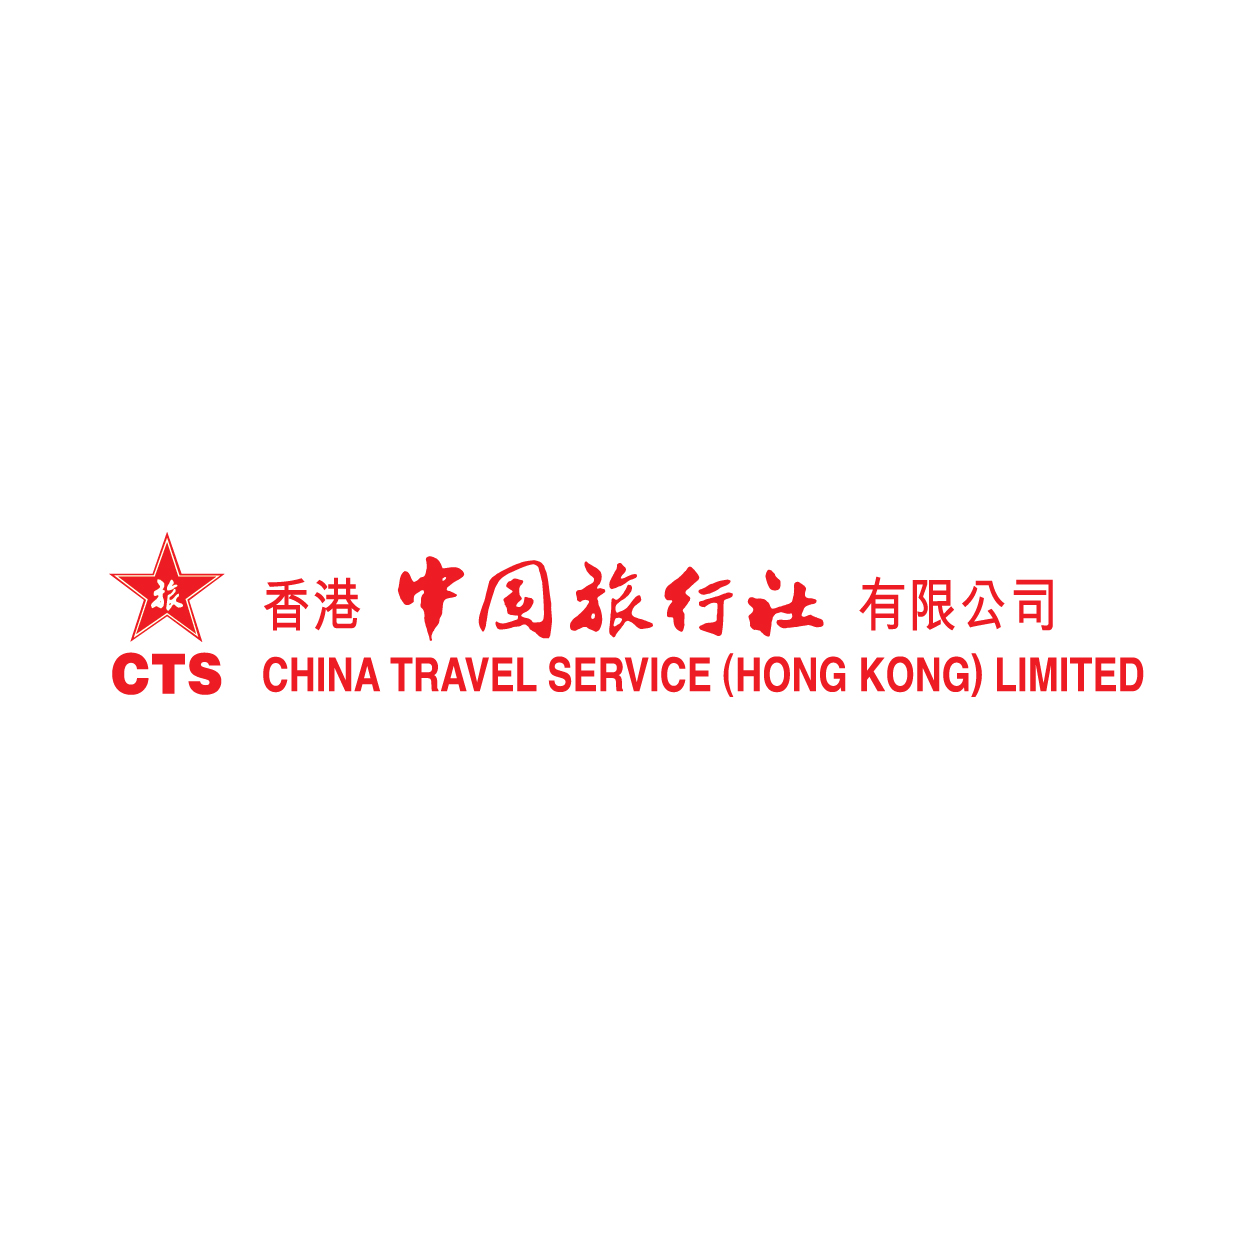 香港中國旅行社 China Travel Services